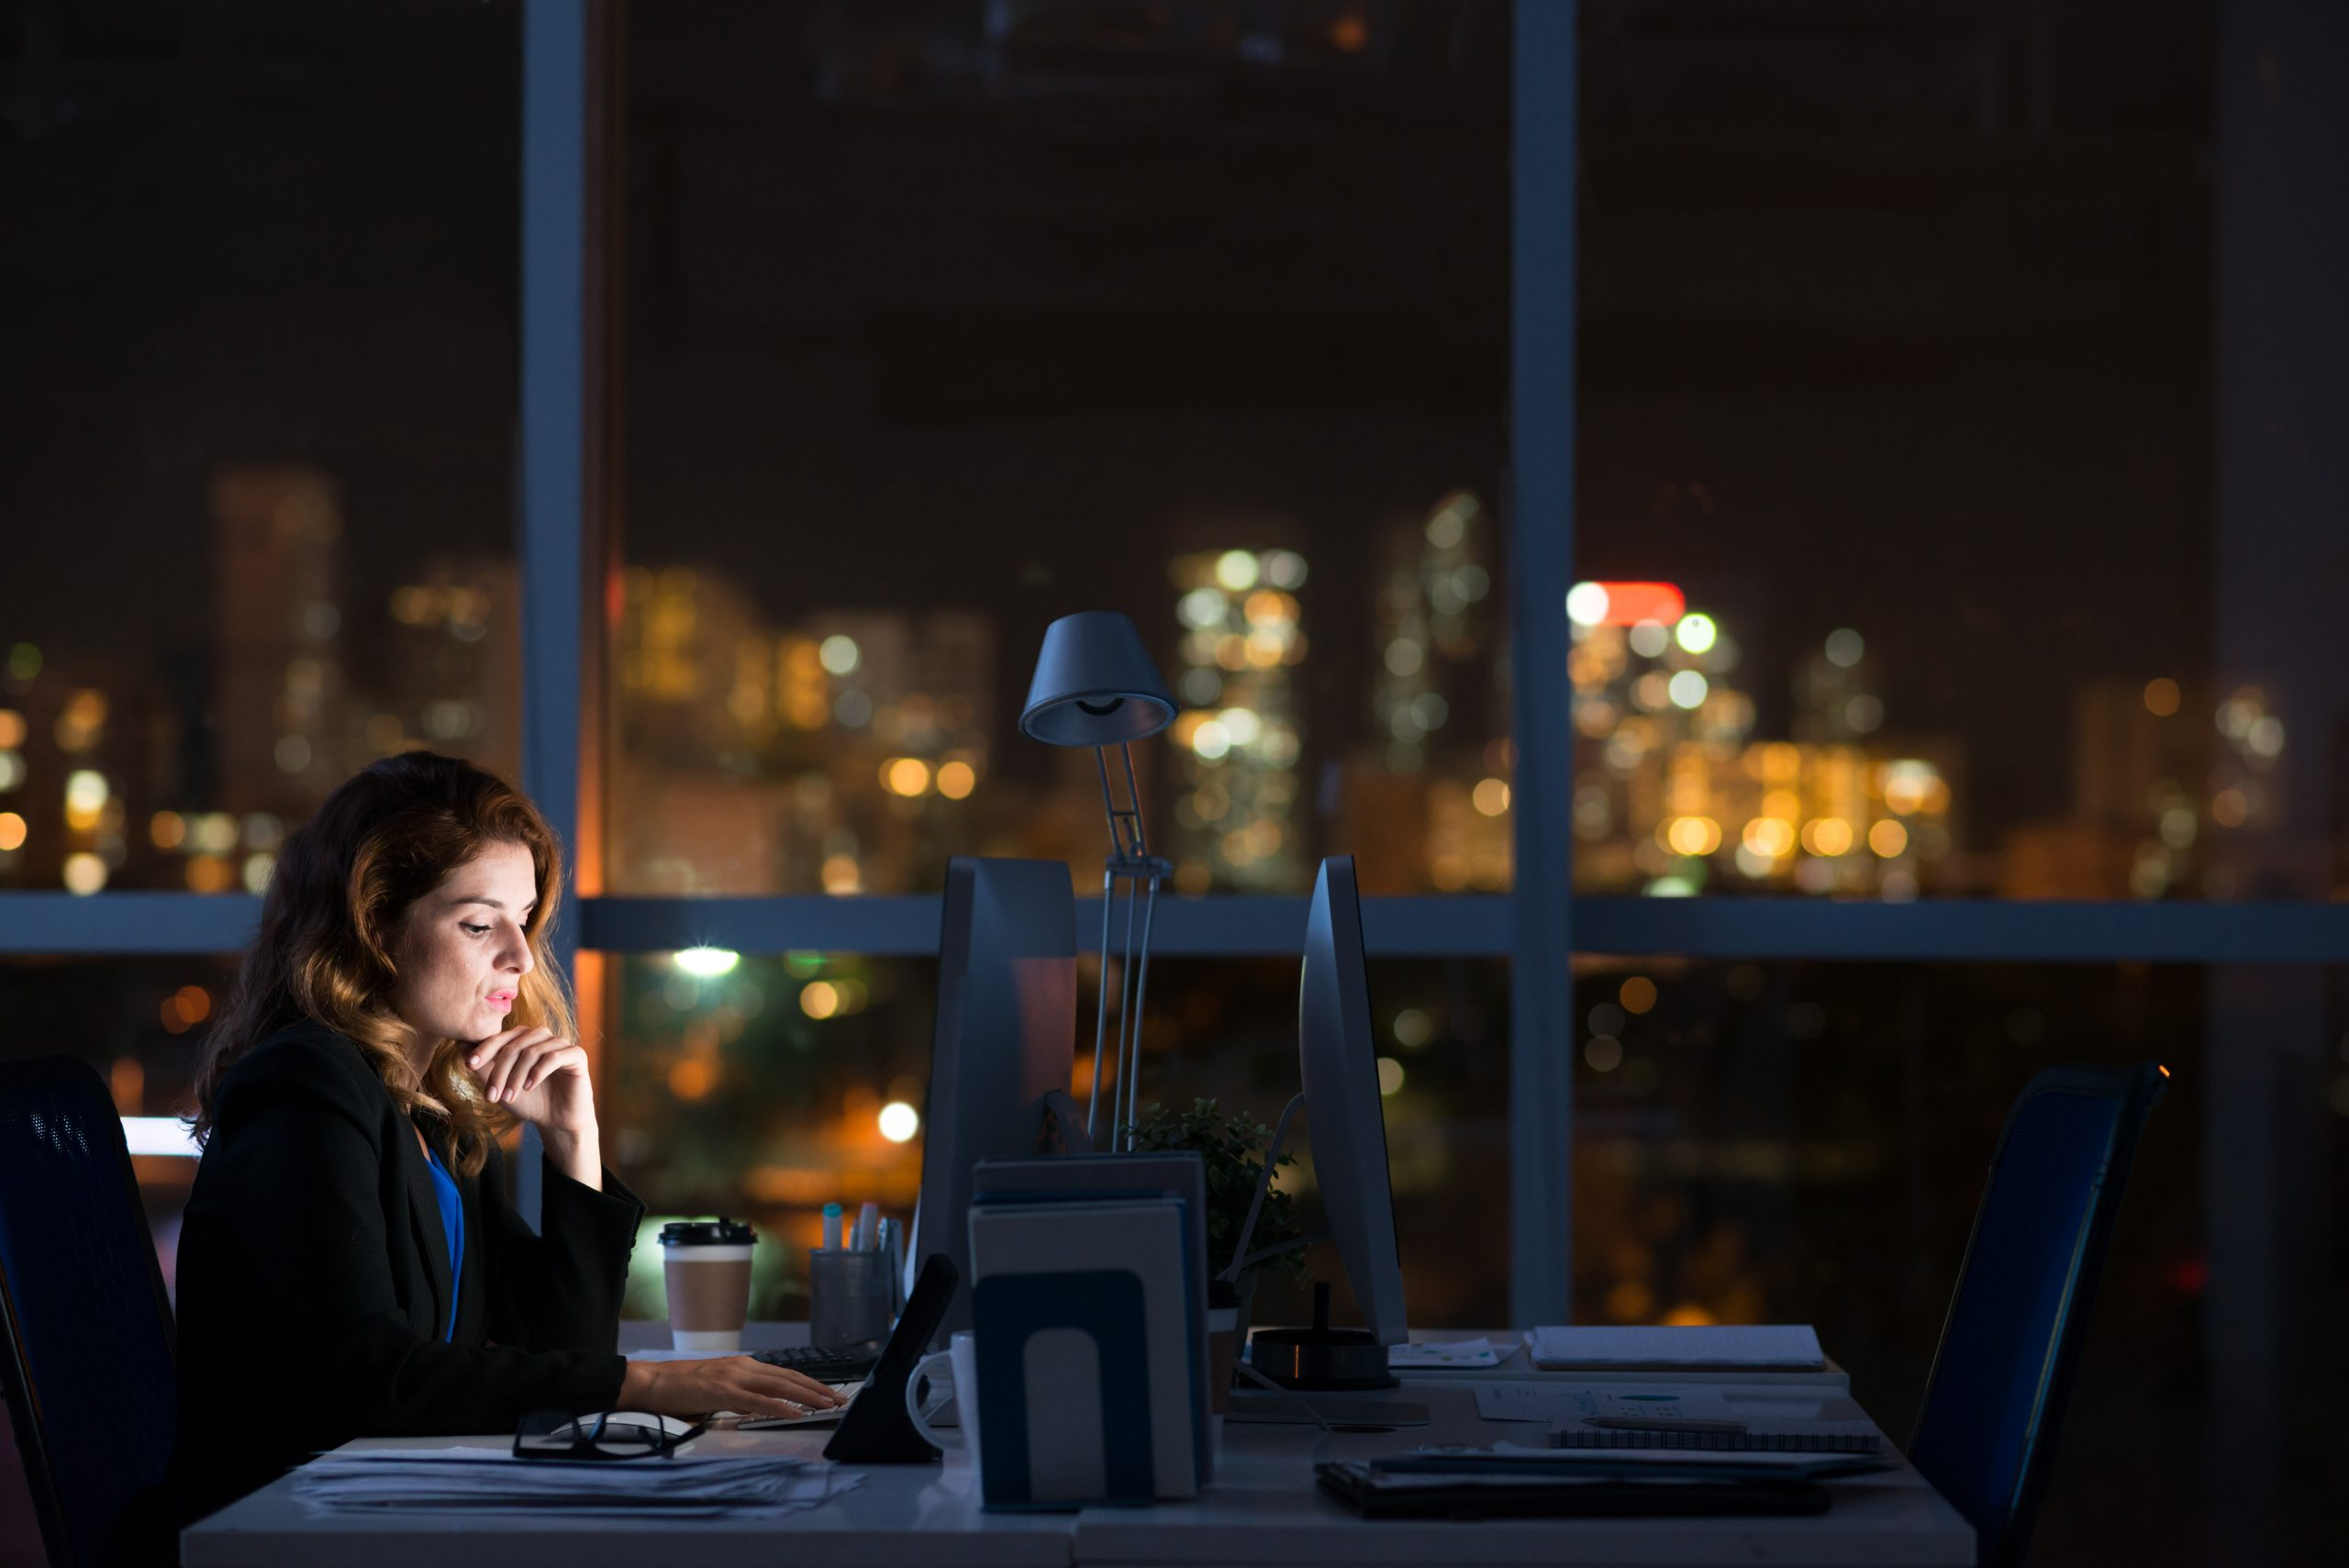 Woman working overtime at her desk at night